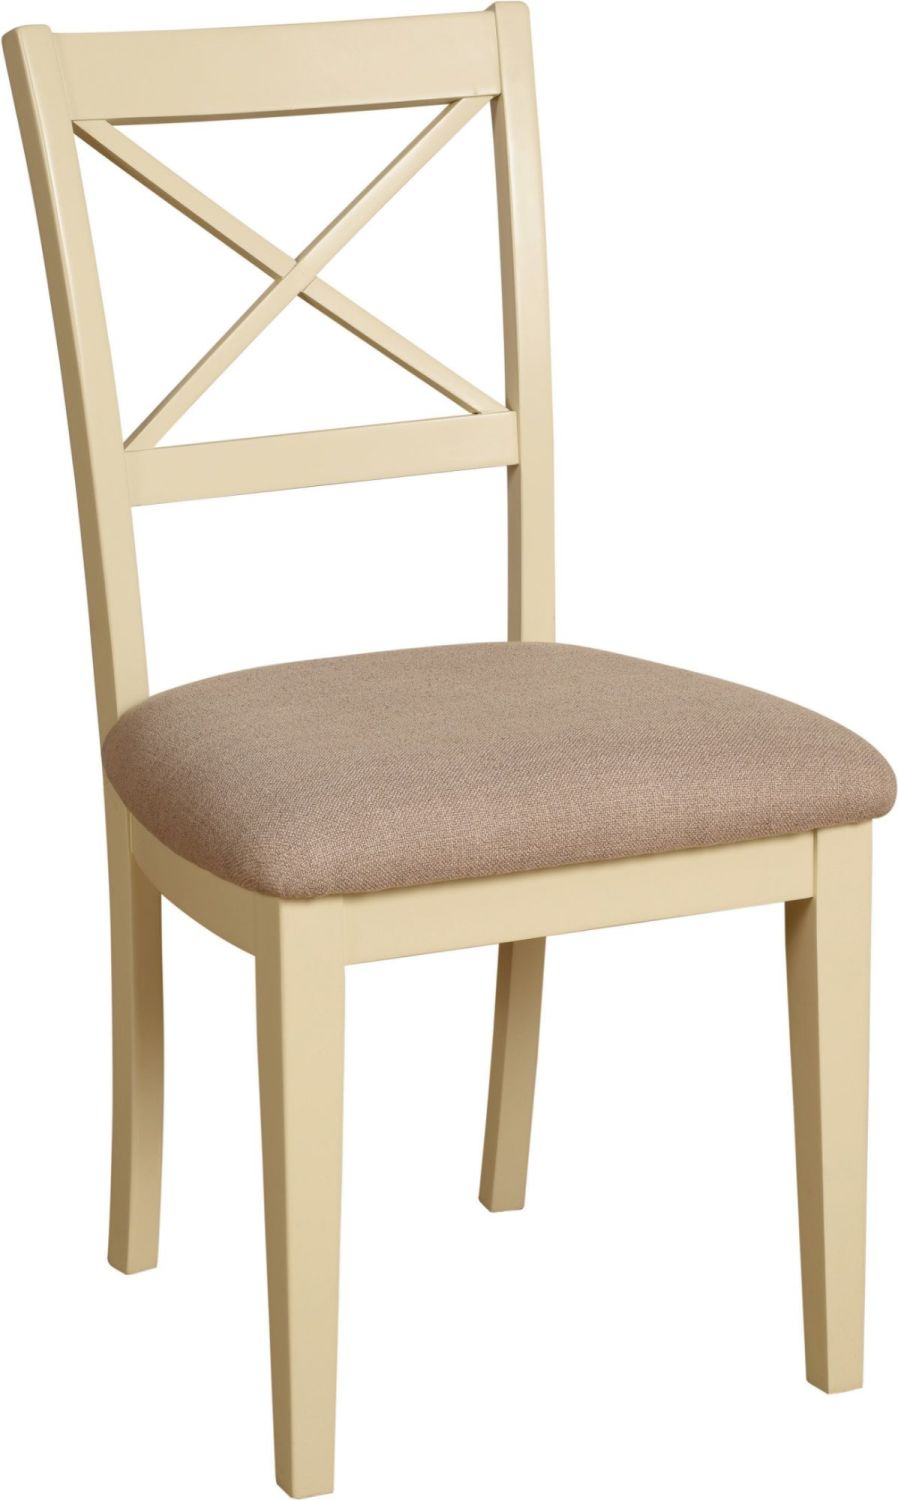 Lundy Dining Chair Cross Back